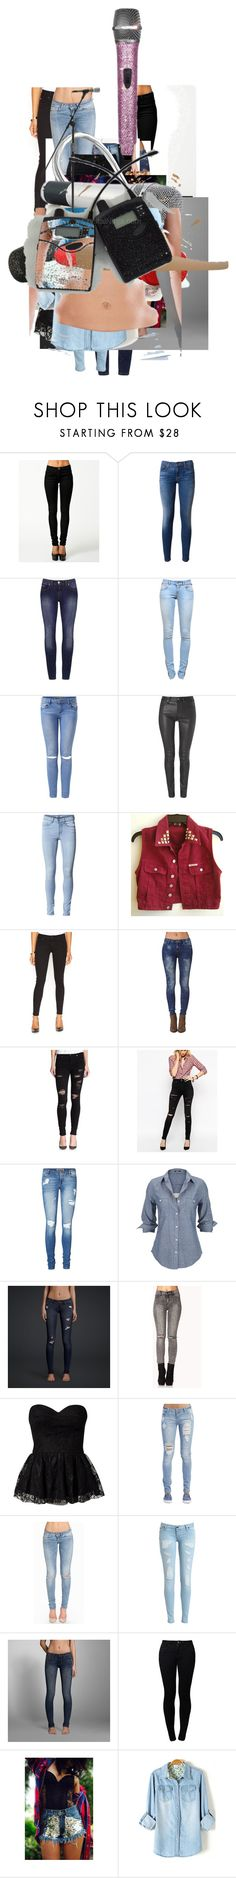 """""""Ignore"""" by cleo-scott ❤ liked on Polyvore featuring ONLY, Hudson, Anine Bing, Helmut Lang, GUESS, Hudson Jeans, Bullhead Denim Co., True Religion, ASOS and Vero Moda"""